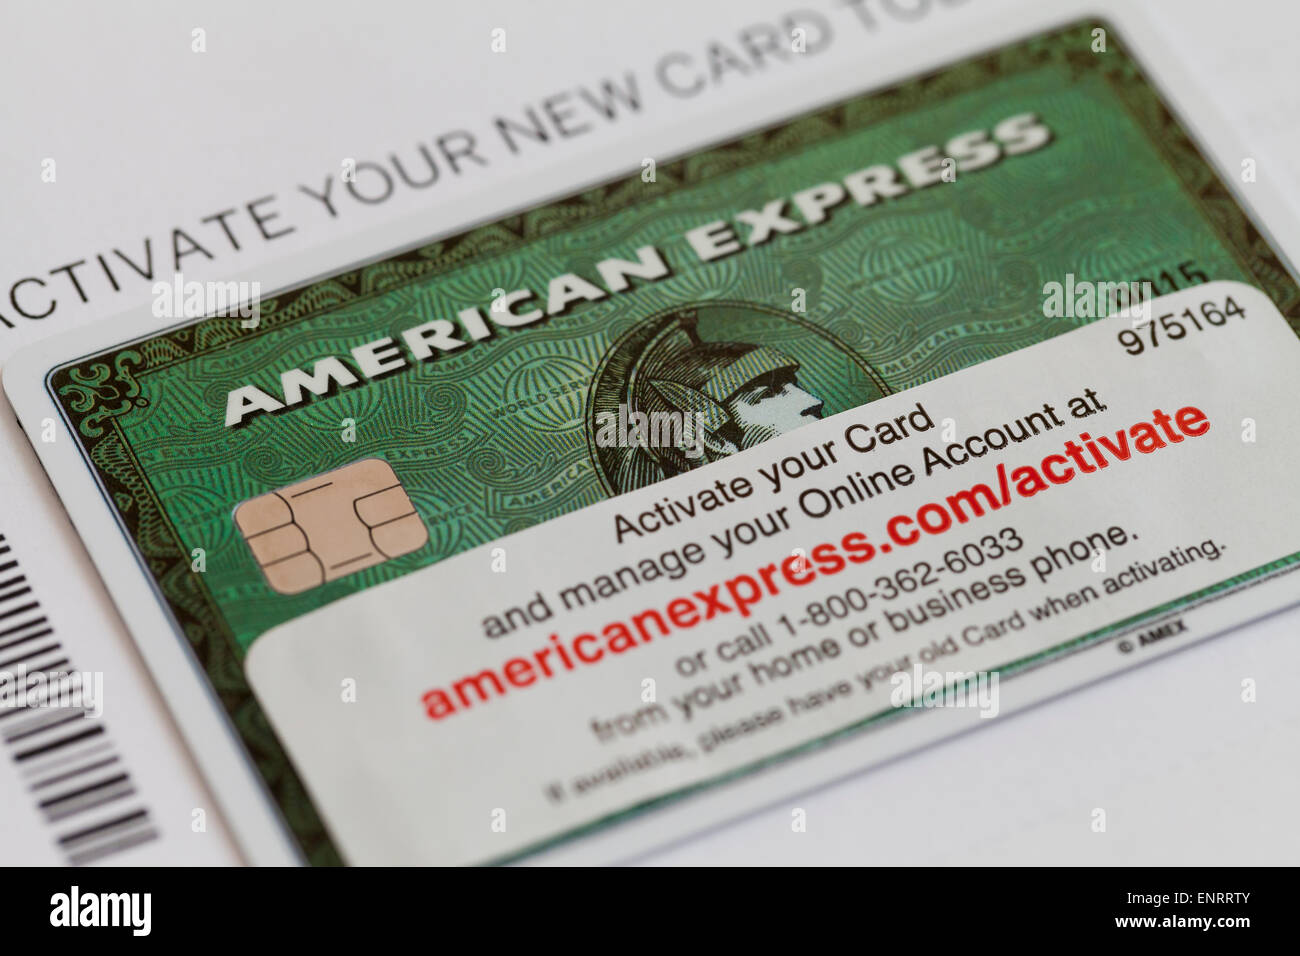 American Express Usa >> New American Express Card With Activation Information Usa